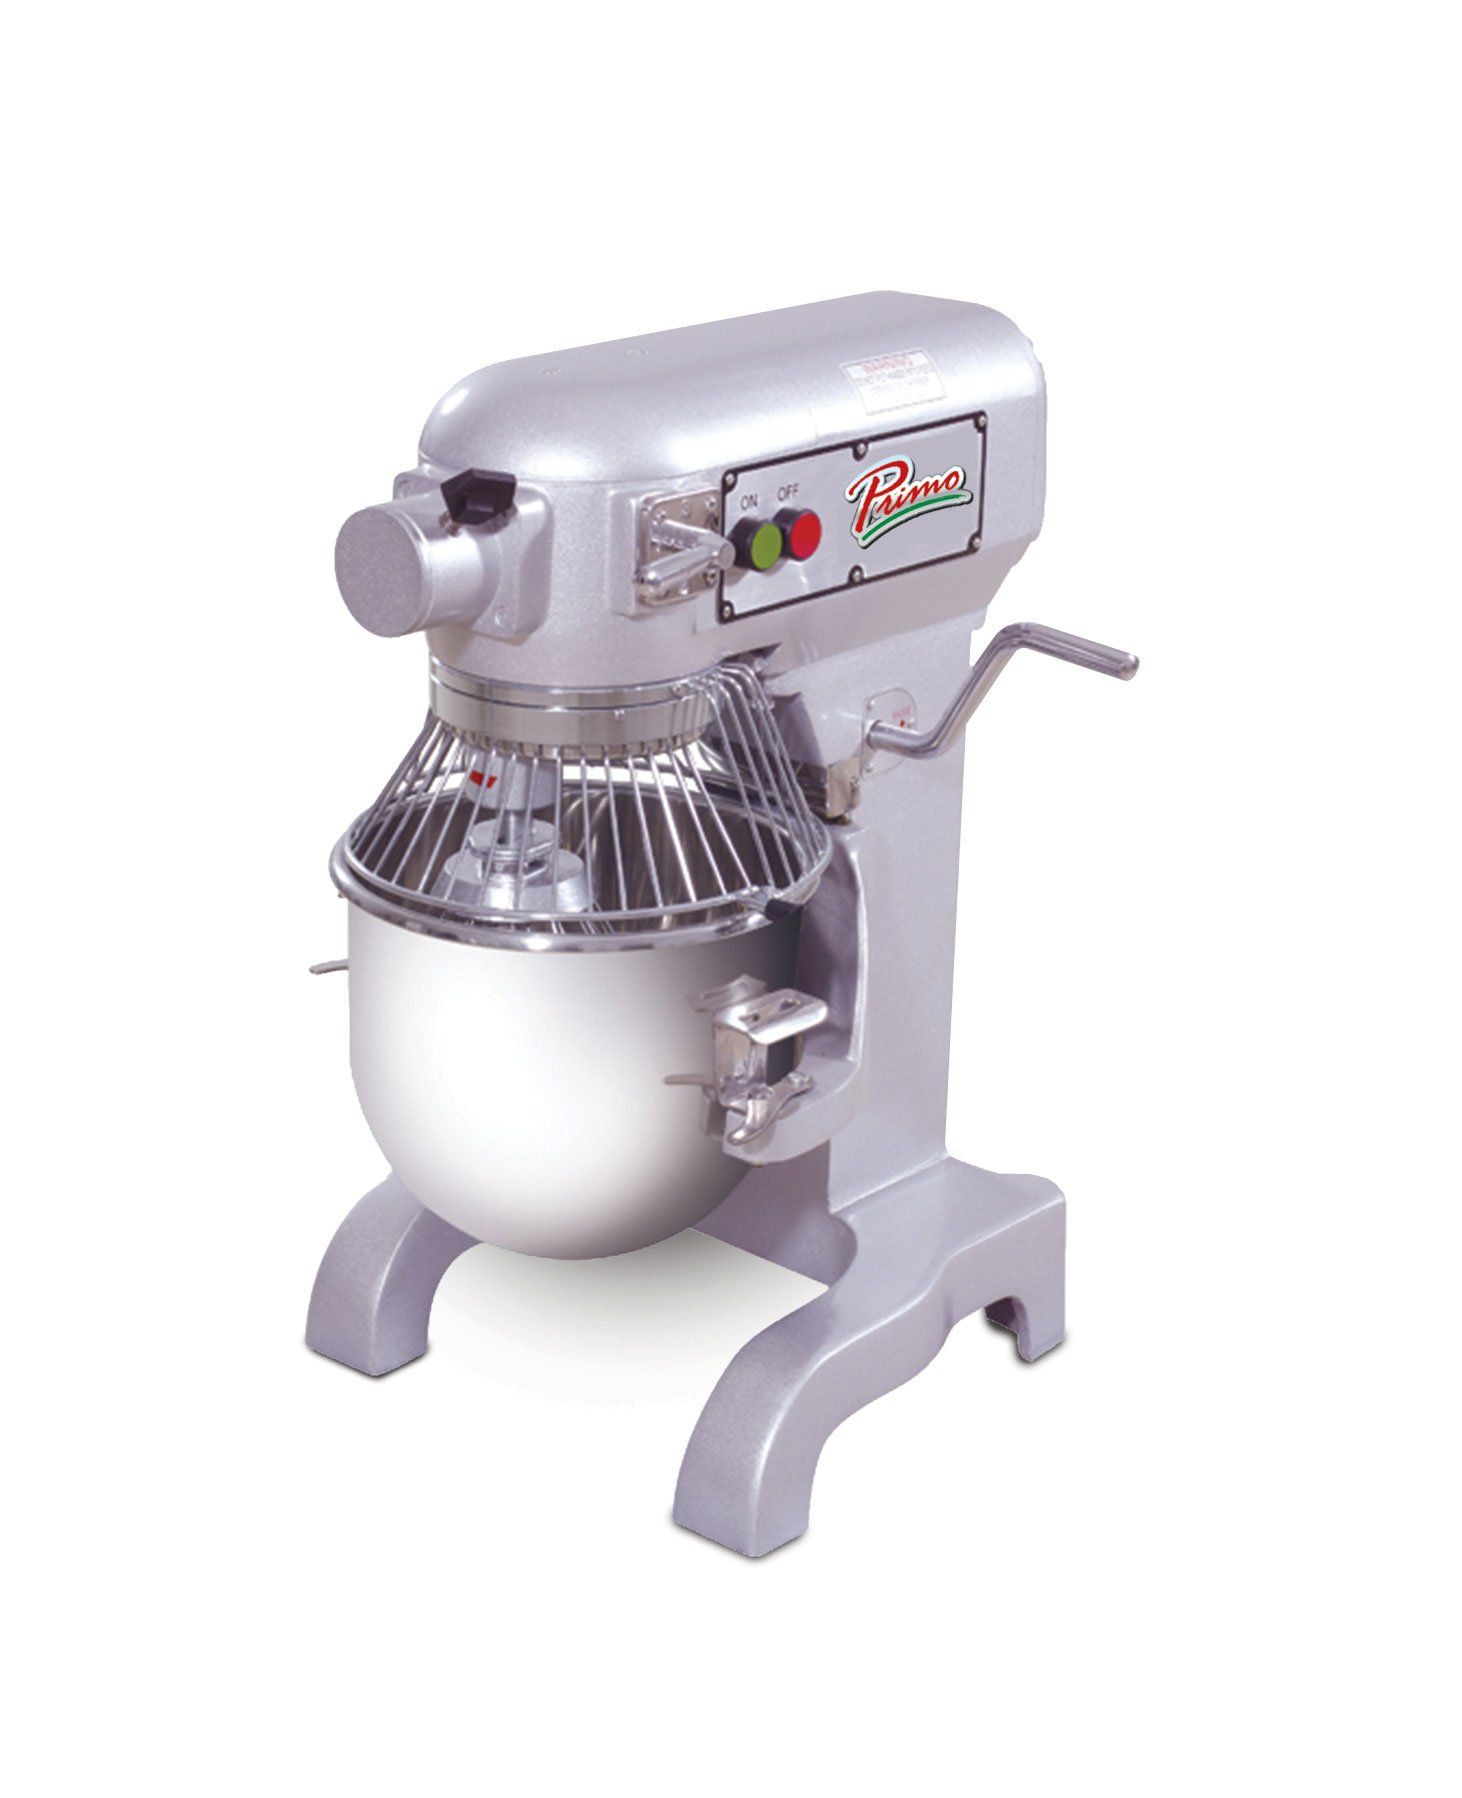 PRIMO PM-10 Stainless Steel Mixer, 10 quart Capacity, 13'' Width x 30'' Height x 15'' Depth